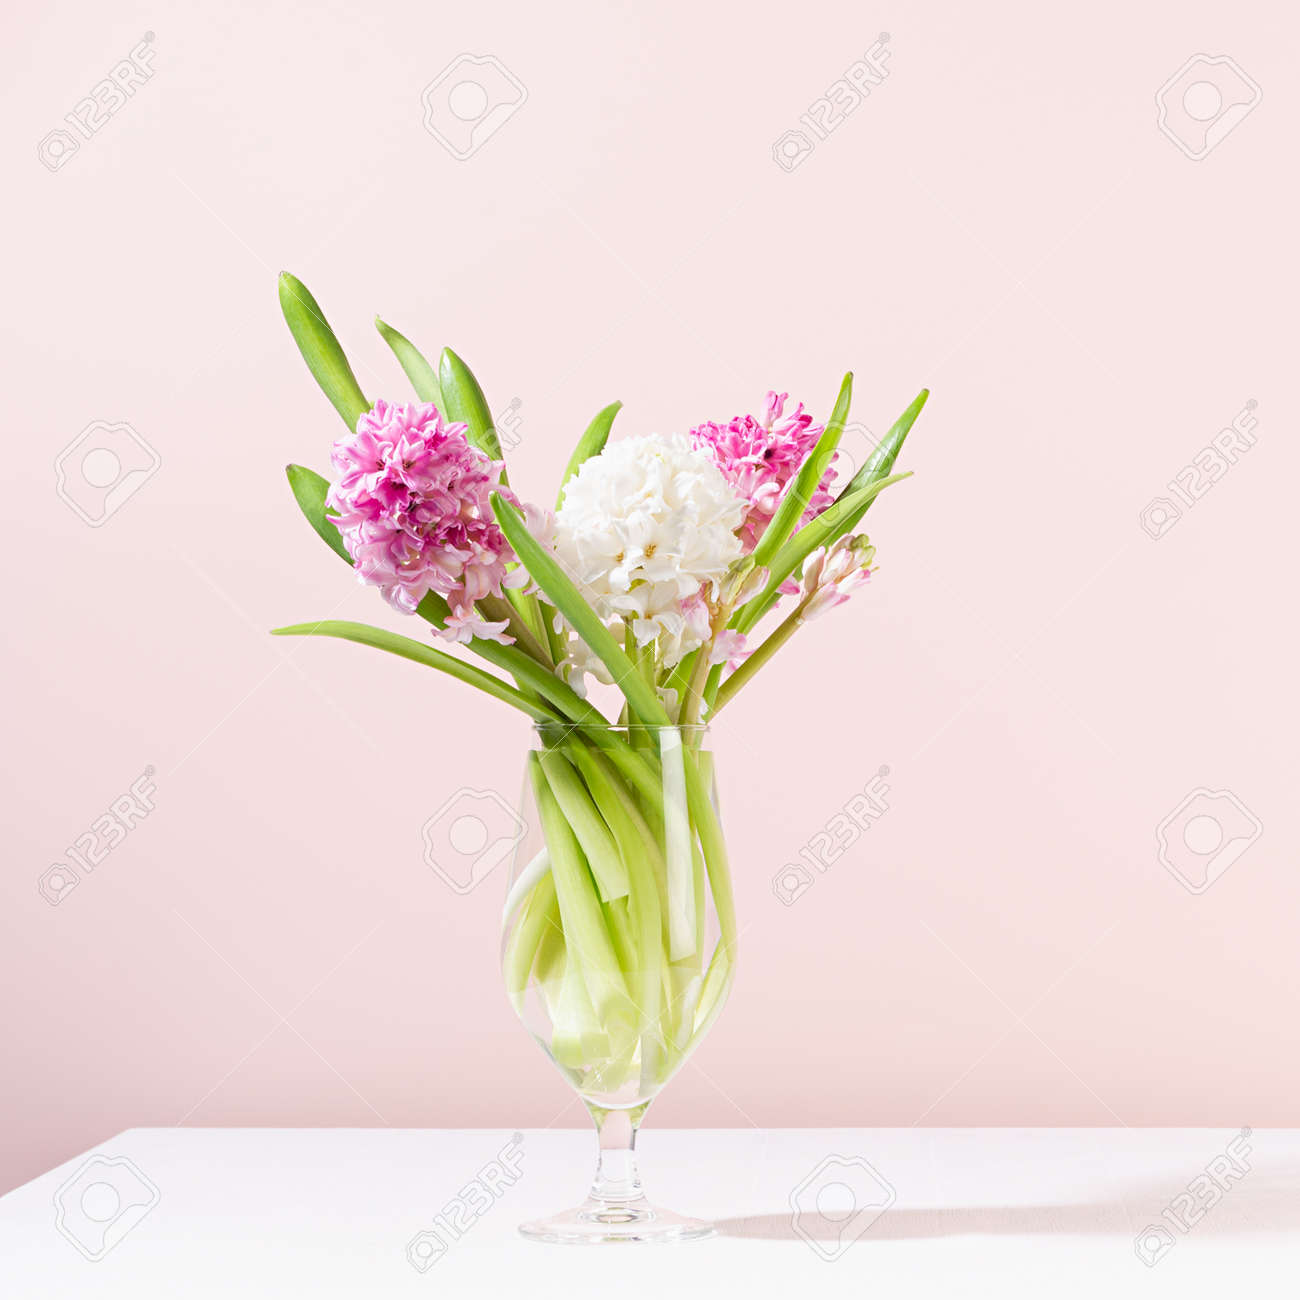 Fresh delicate spring home interior with pink hyacinth bouquet in vase on white wooden table, square. - 168468849